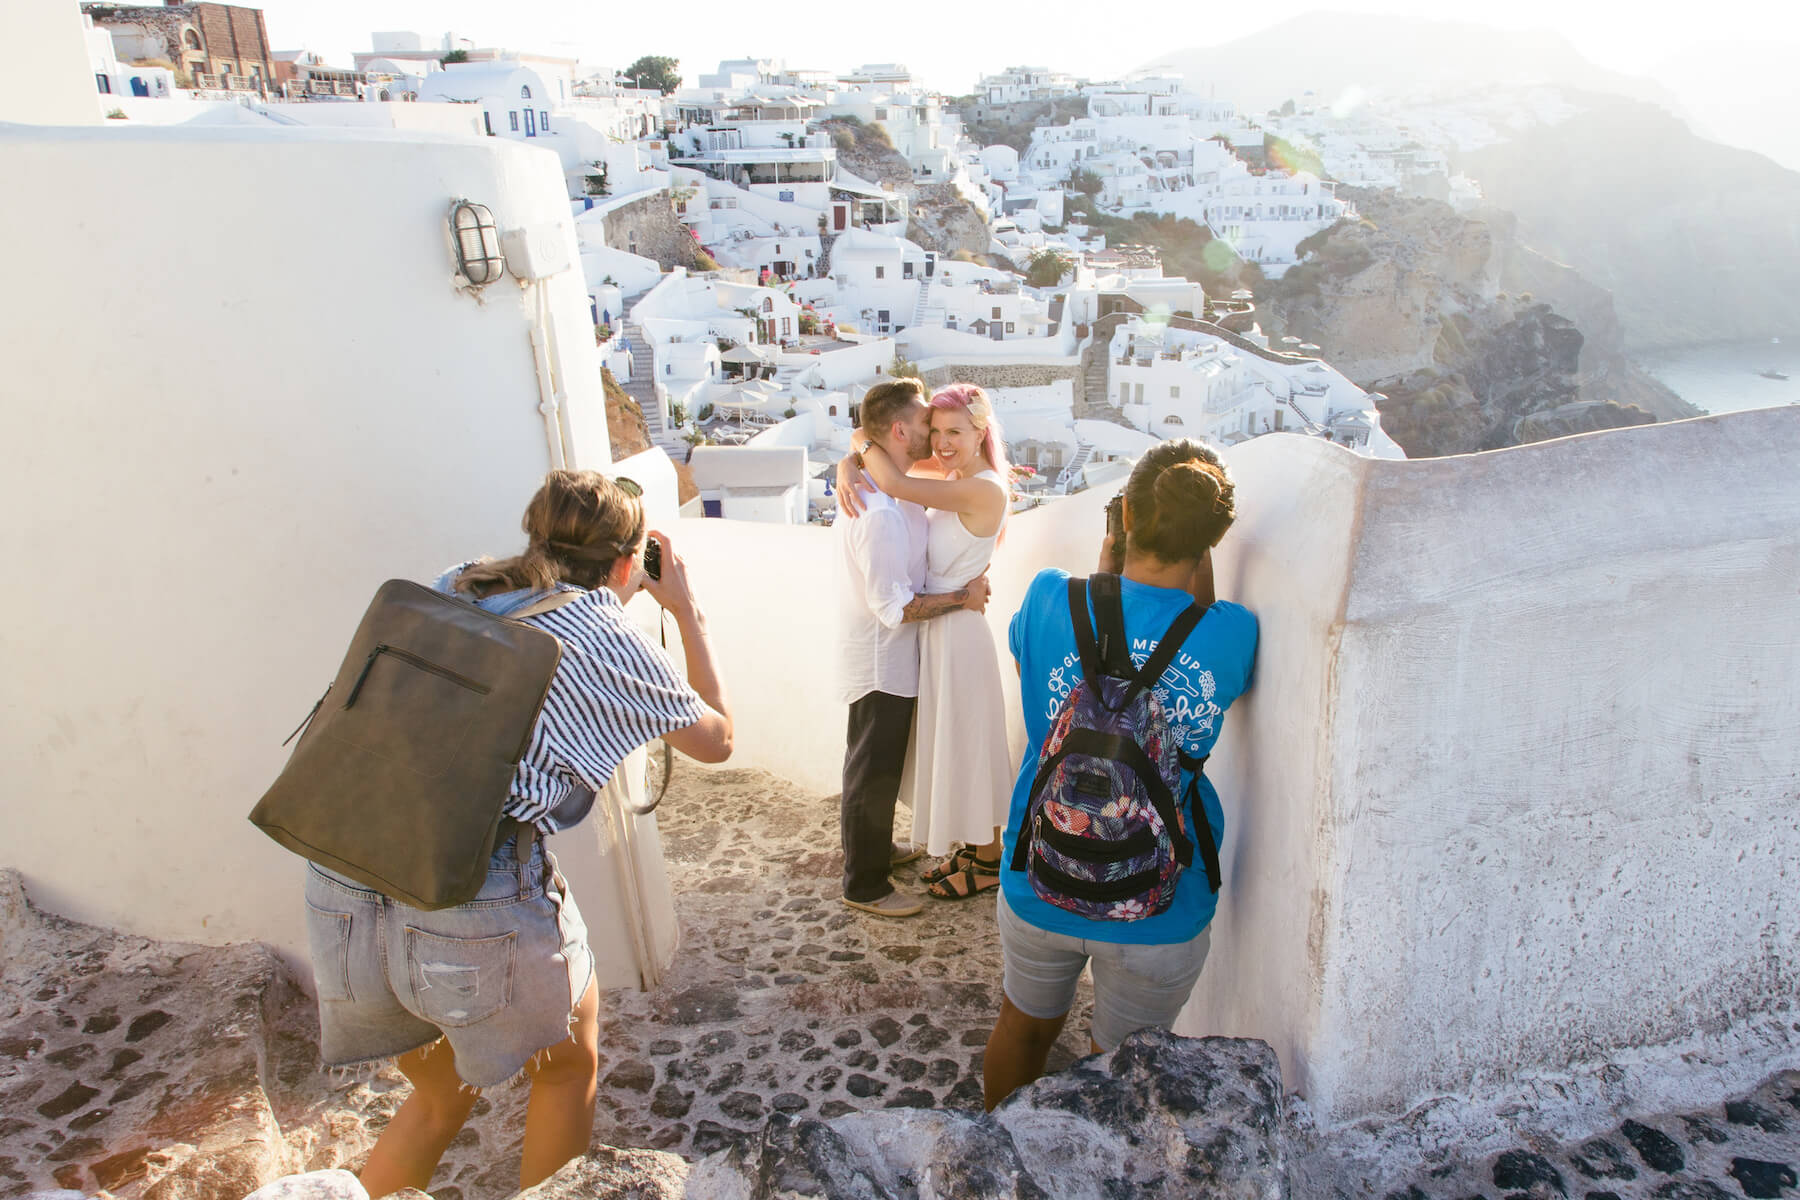 Photographers taking a photo of a couple in Santorini, Greece